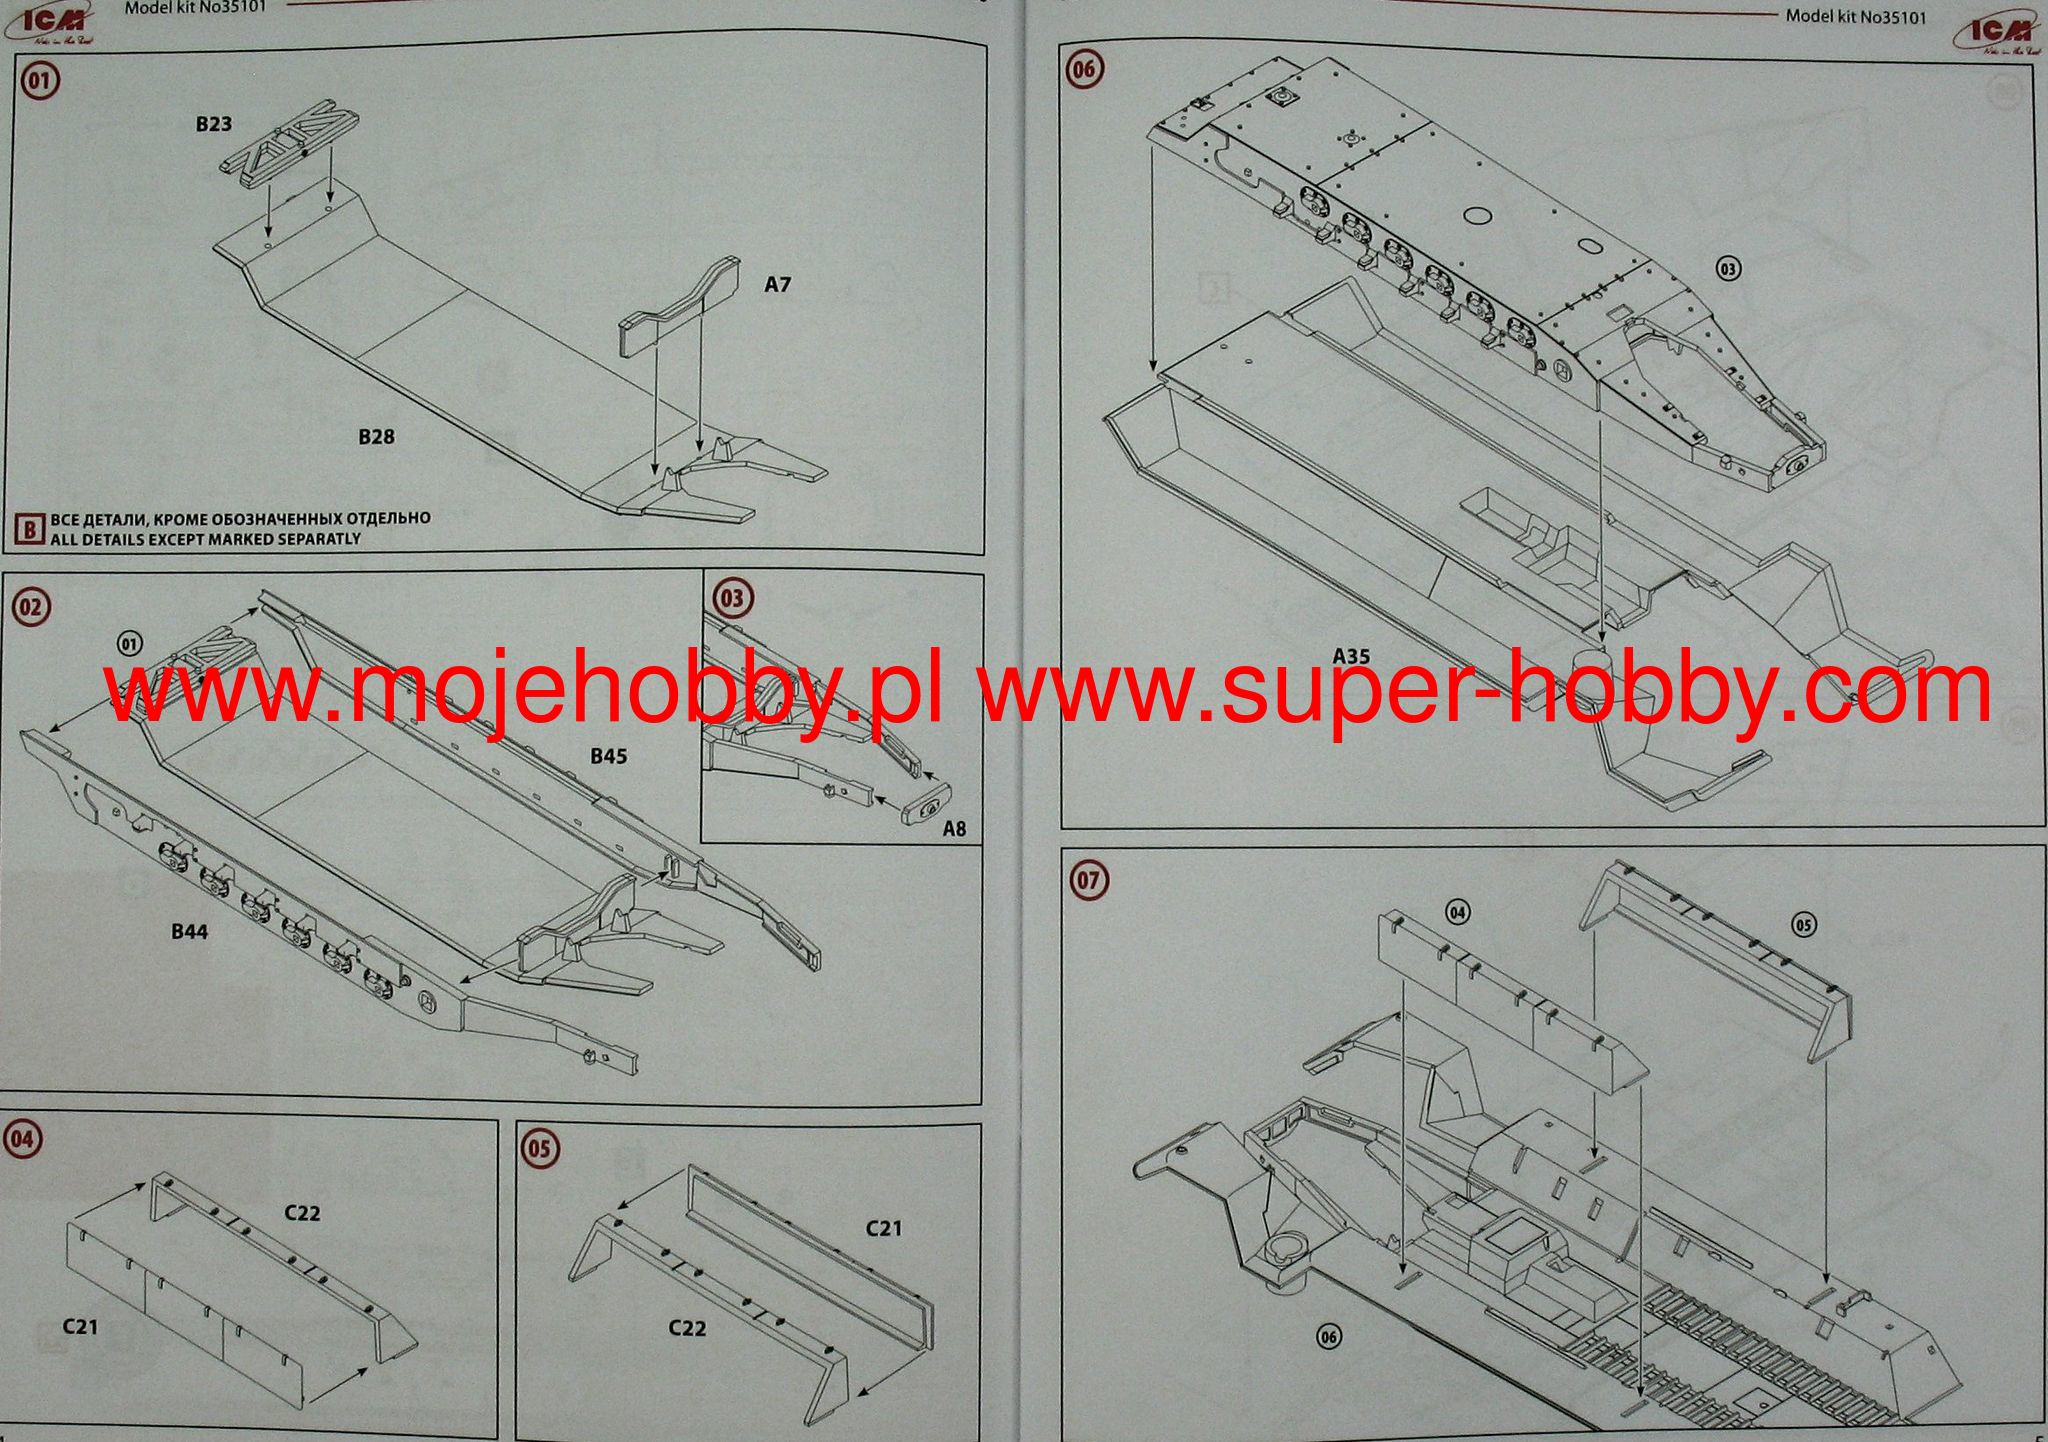 Icm253 Icm Control Time Delay Products T Circuit Board Wiring Diagram Sd Kfz 251 1 Ausf A 35101 Mustang Harness Dme